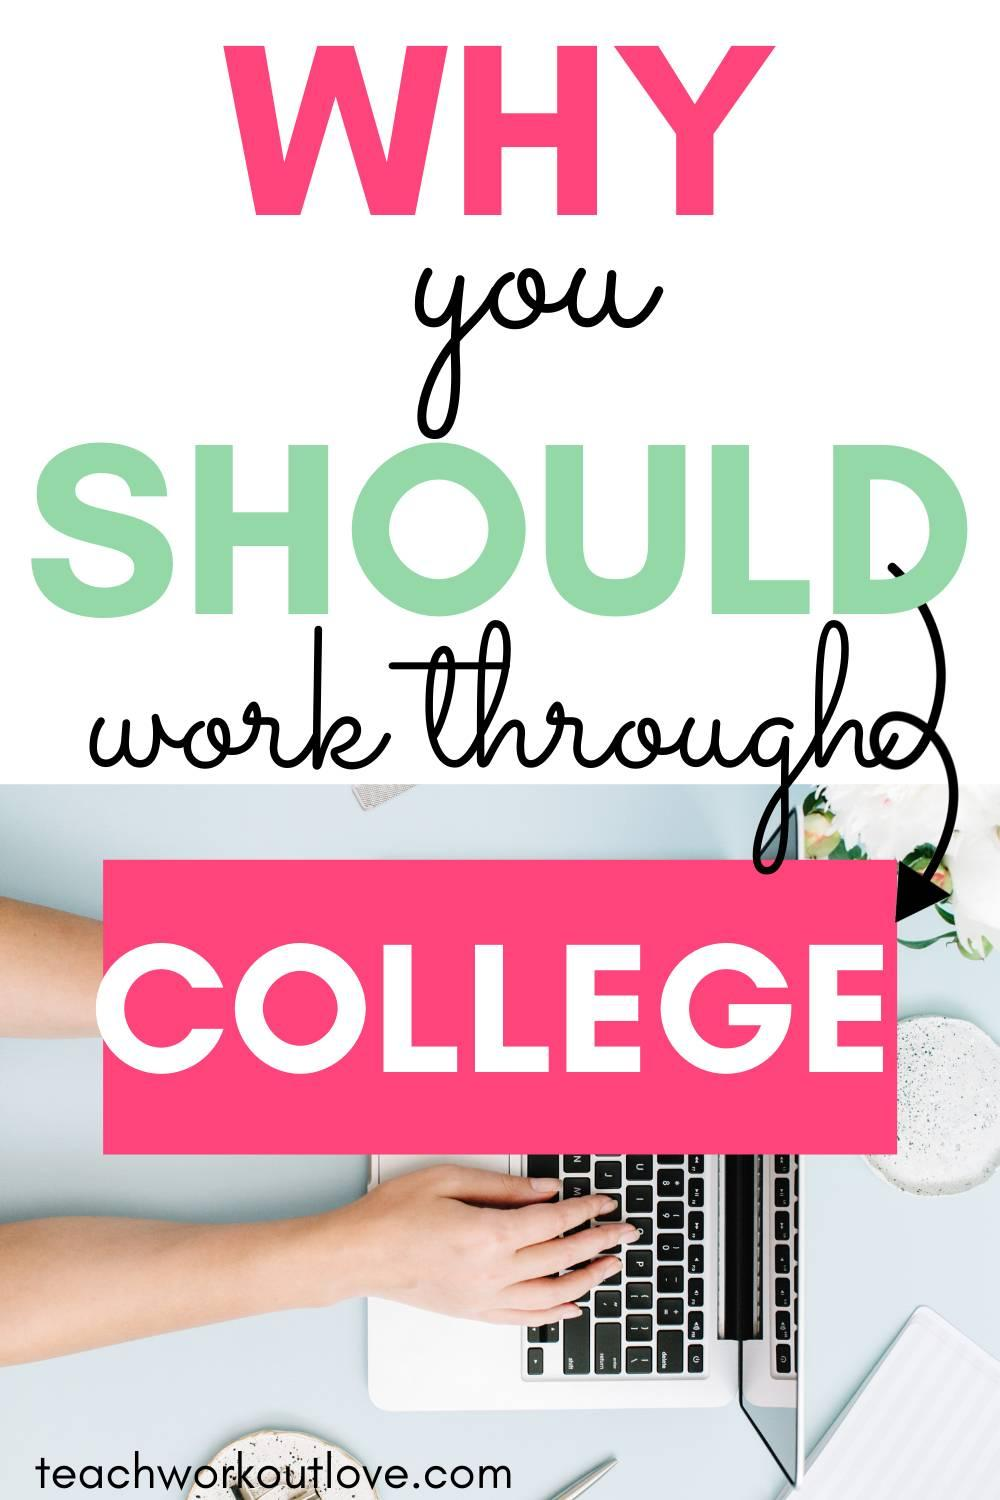 Working during college has a ton of advantages, though, and it's something that you may not have a choice but to consider. Here's why: